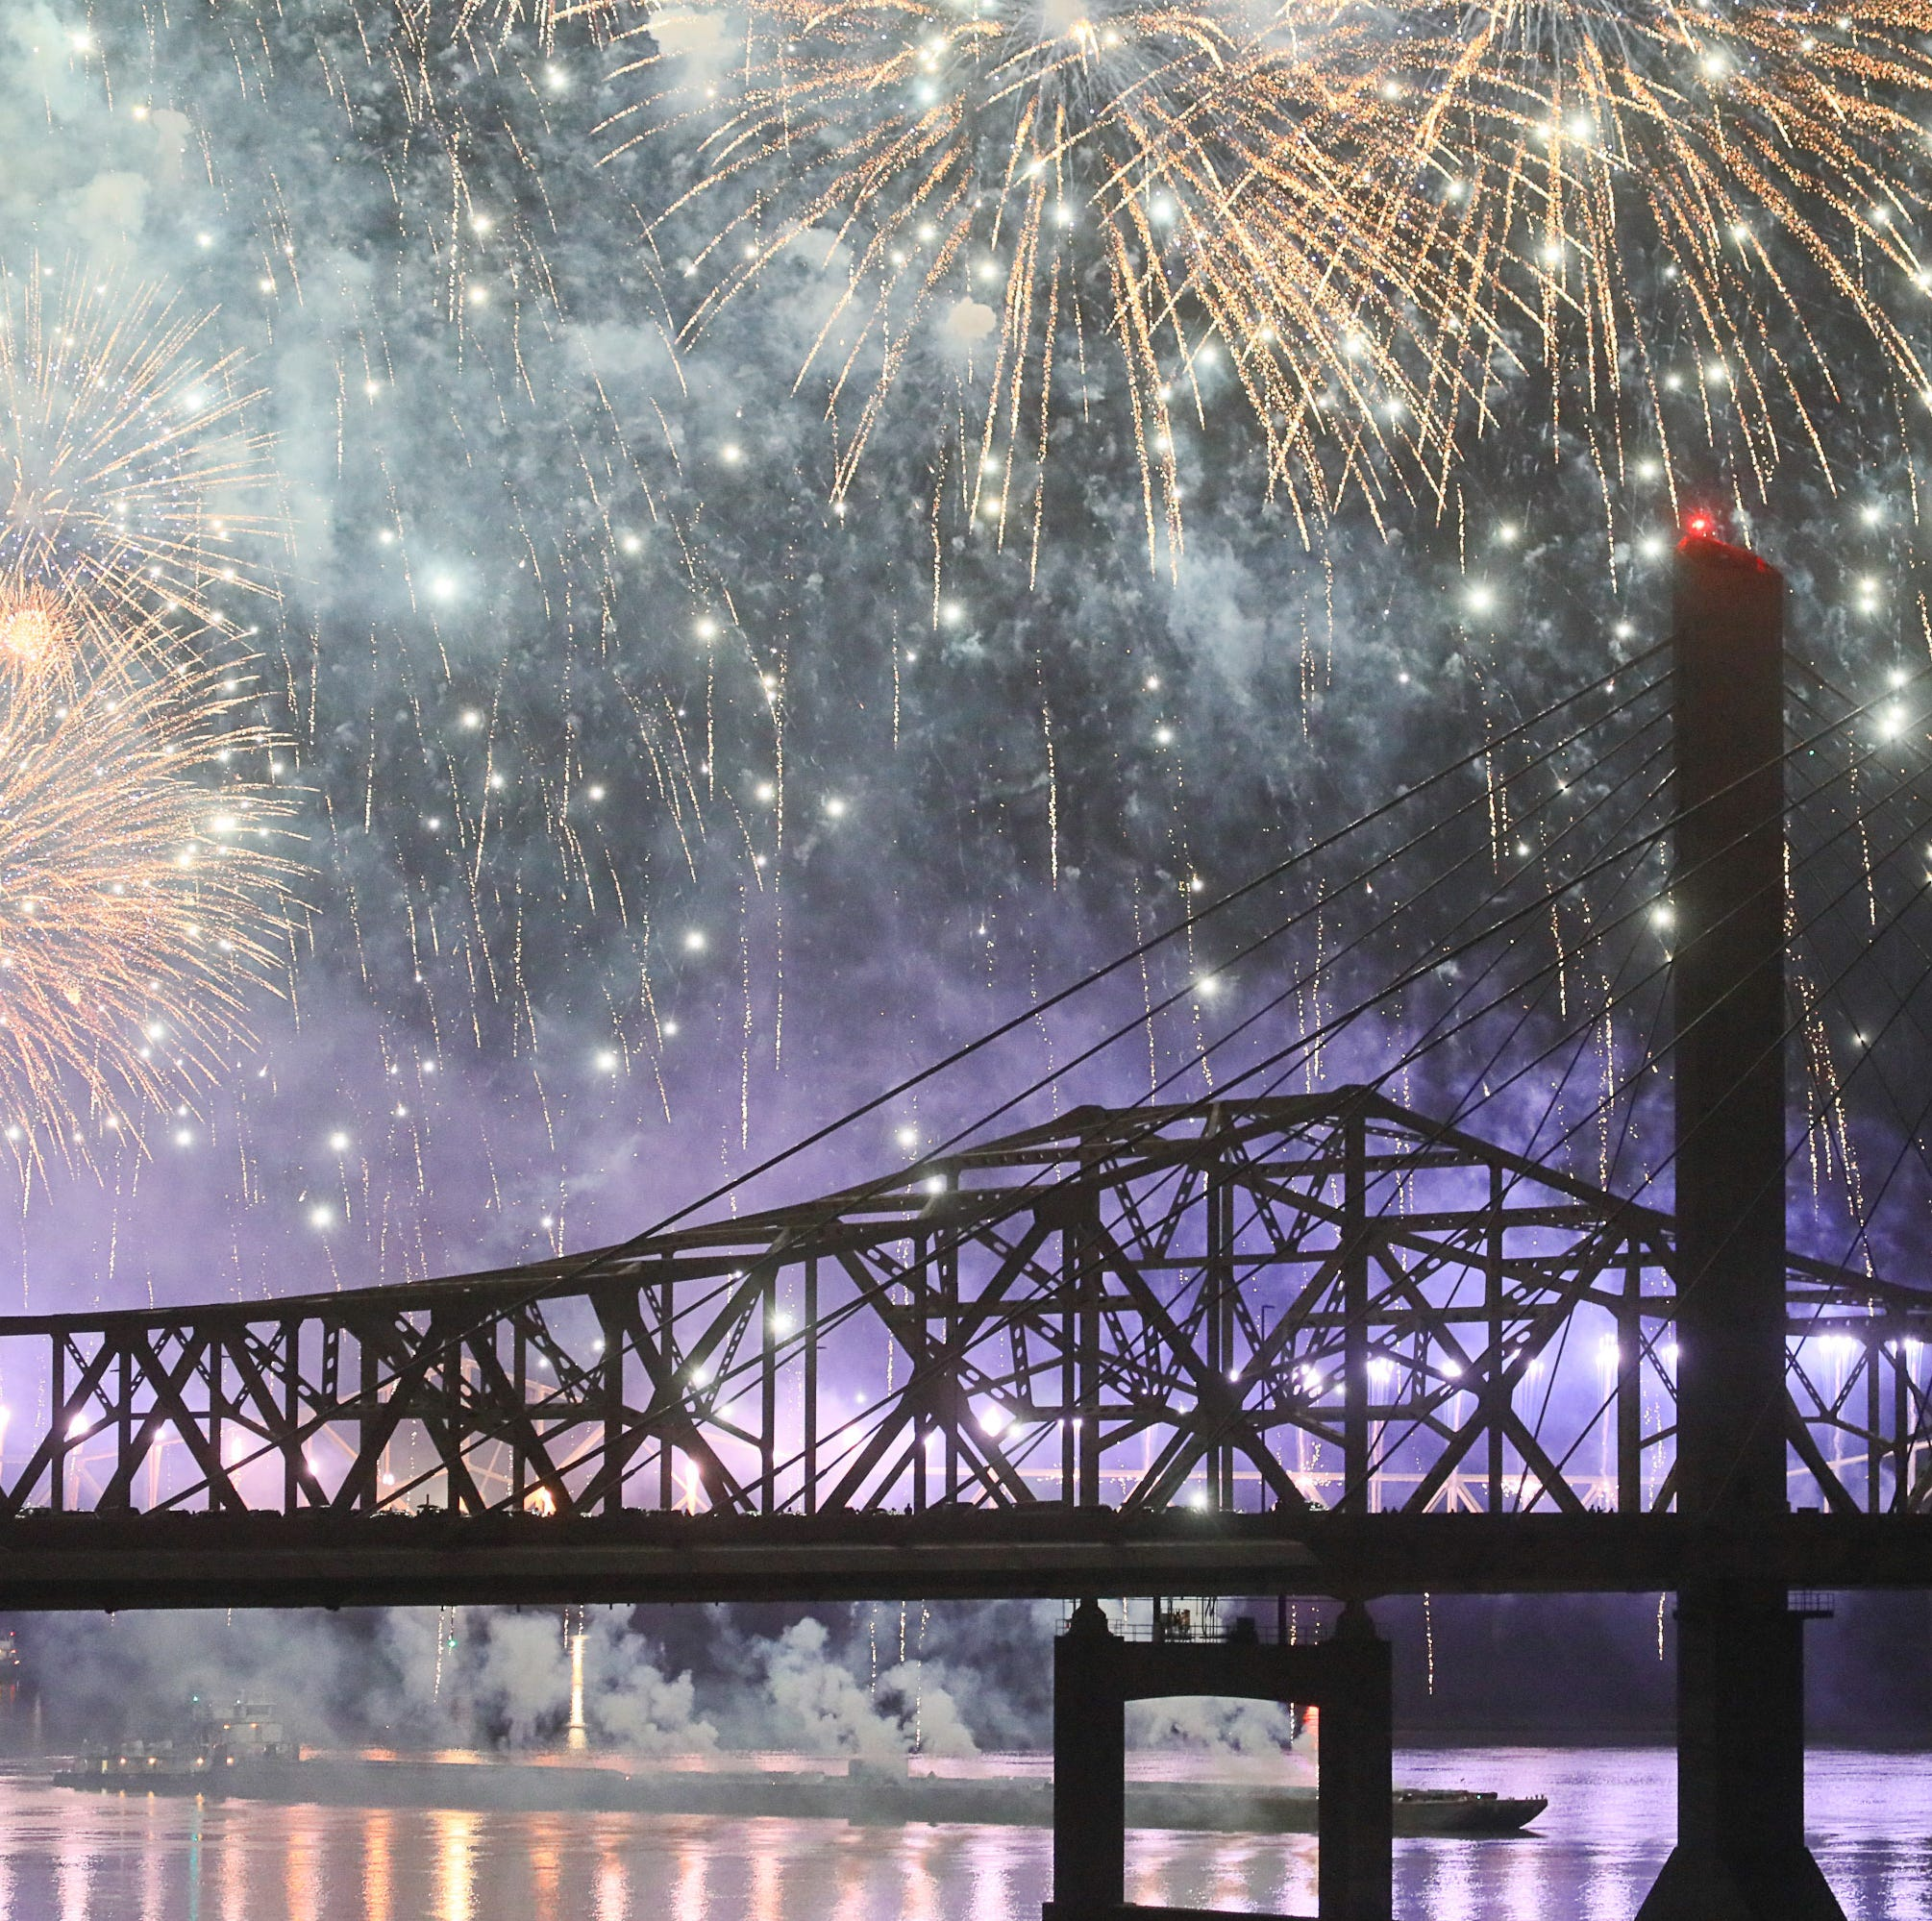 The best scenes from Thunder Over Louisville 2019